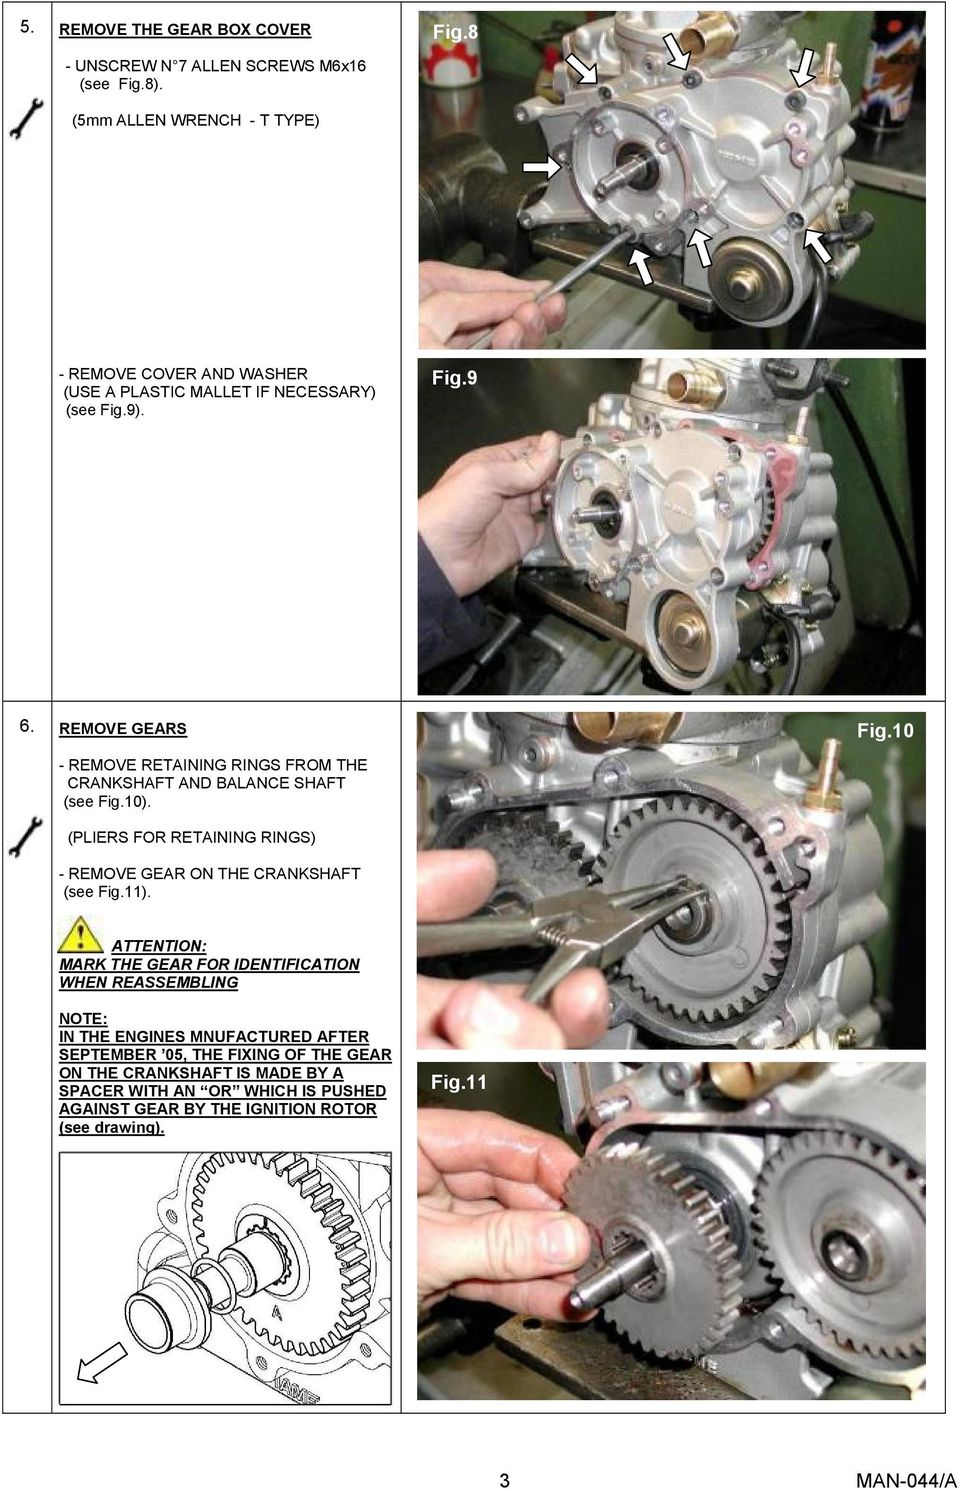 10 - REMOVE RETAINING RINGS FROM THE CRANKSHAFT AND BALANCE SHAFT (see Fig.10). (PLIERS FOR RETAINING RINGS) - REMOVE GEAR ON THE CRANKSHAFT (see Fig.11).